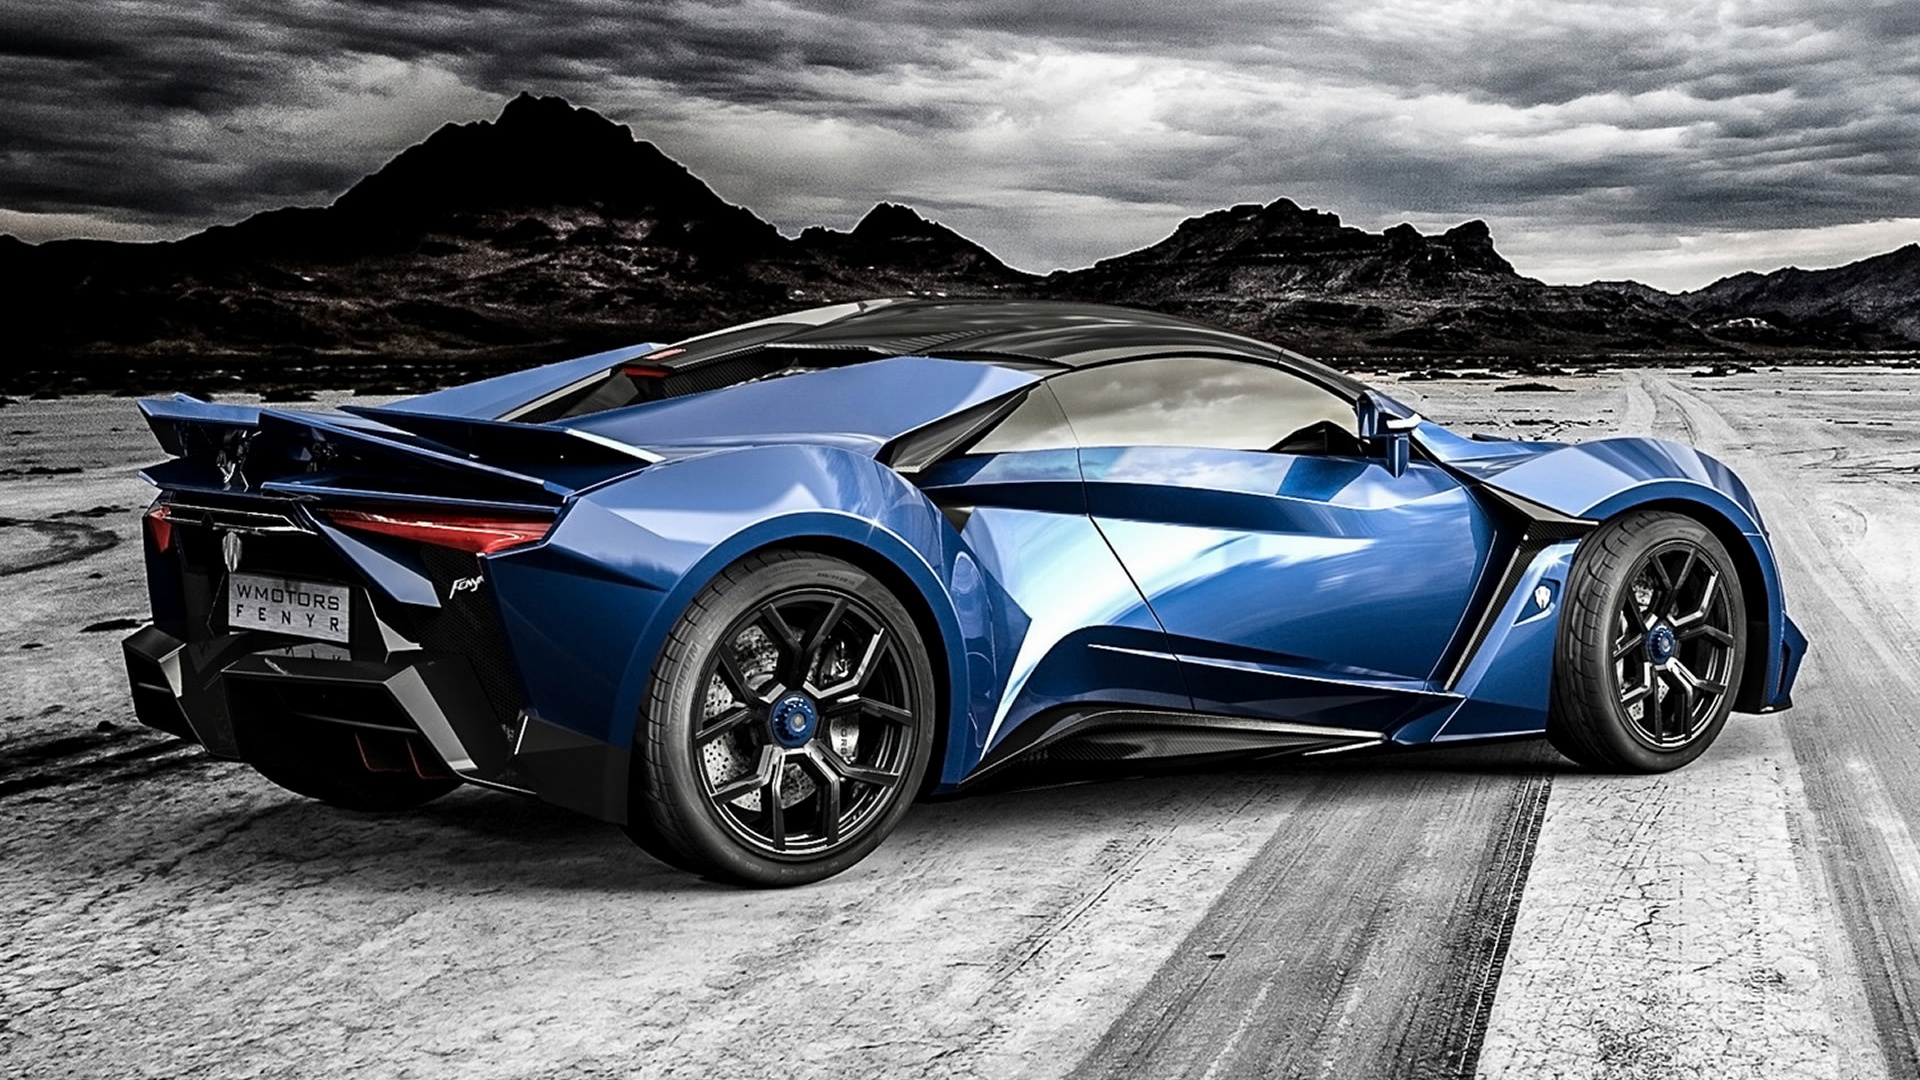 2016 Fenyr SuperSport - Wallpapers And HD Images